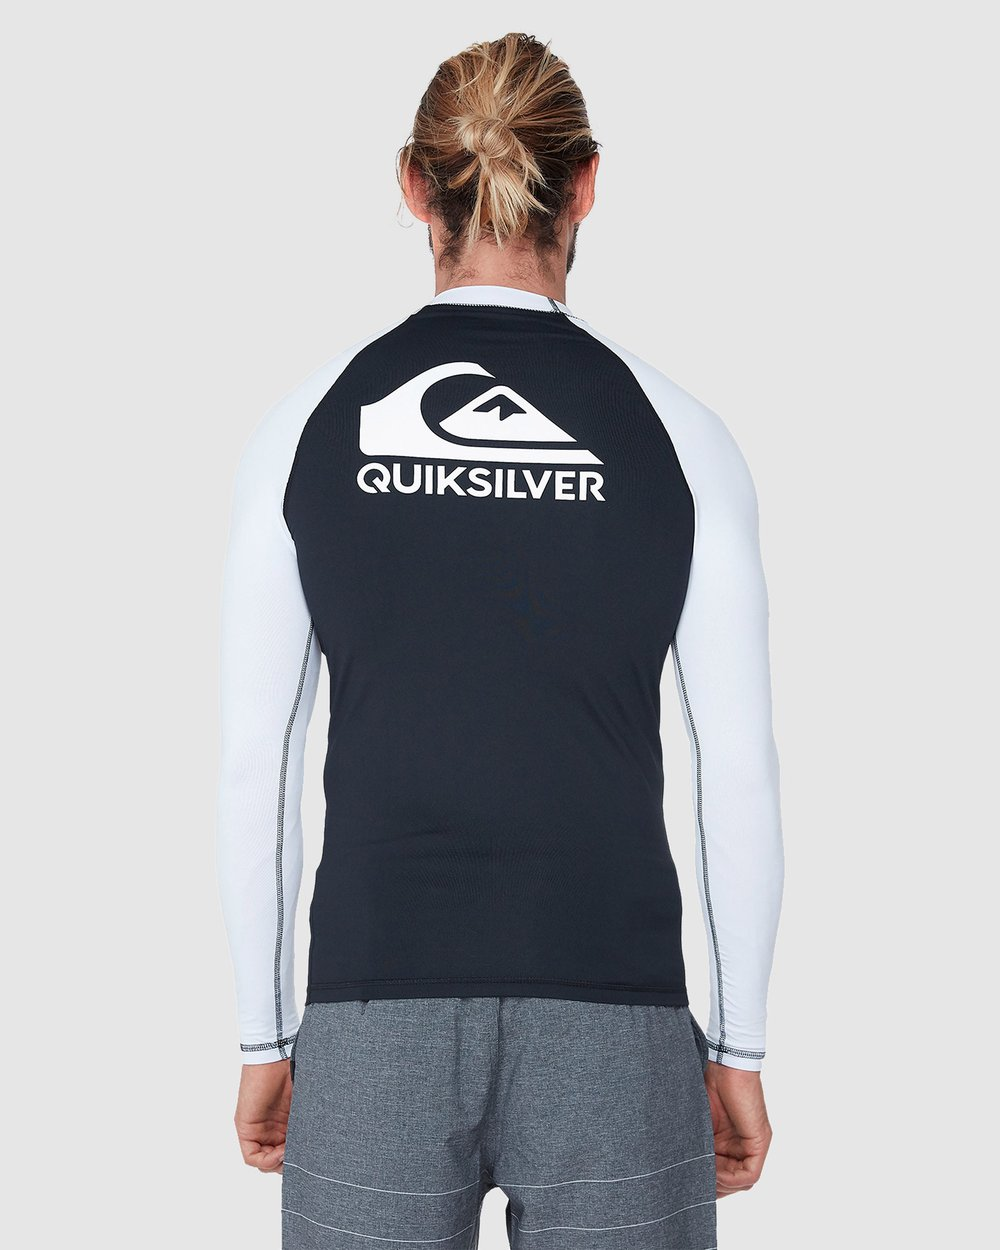 QUIKSILVER Big Boys On Tour Long Sleeve Youth Rashguard 50 Sun Protection